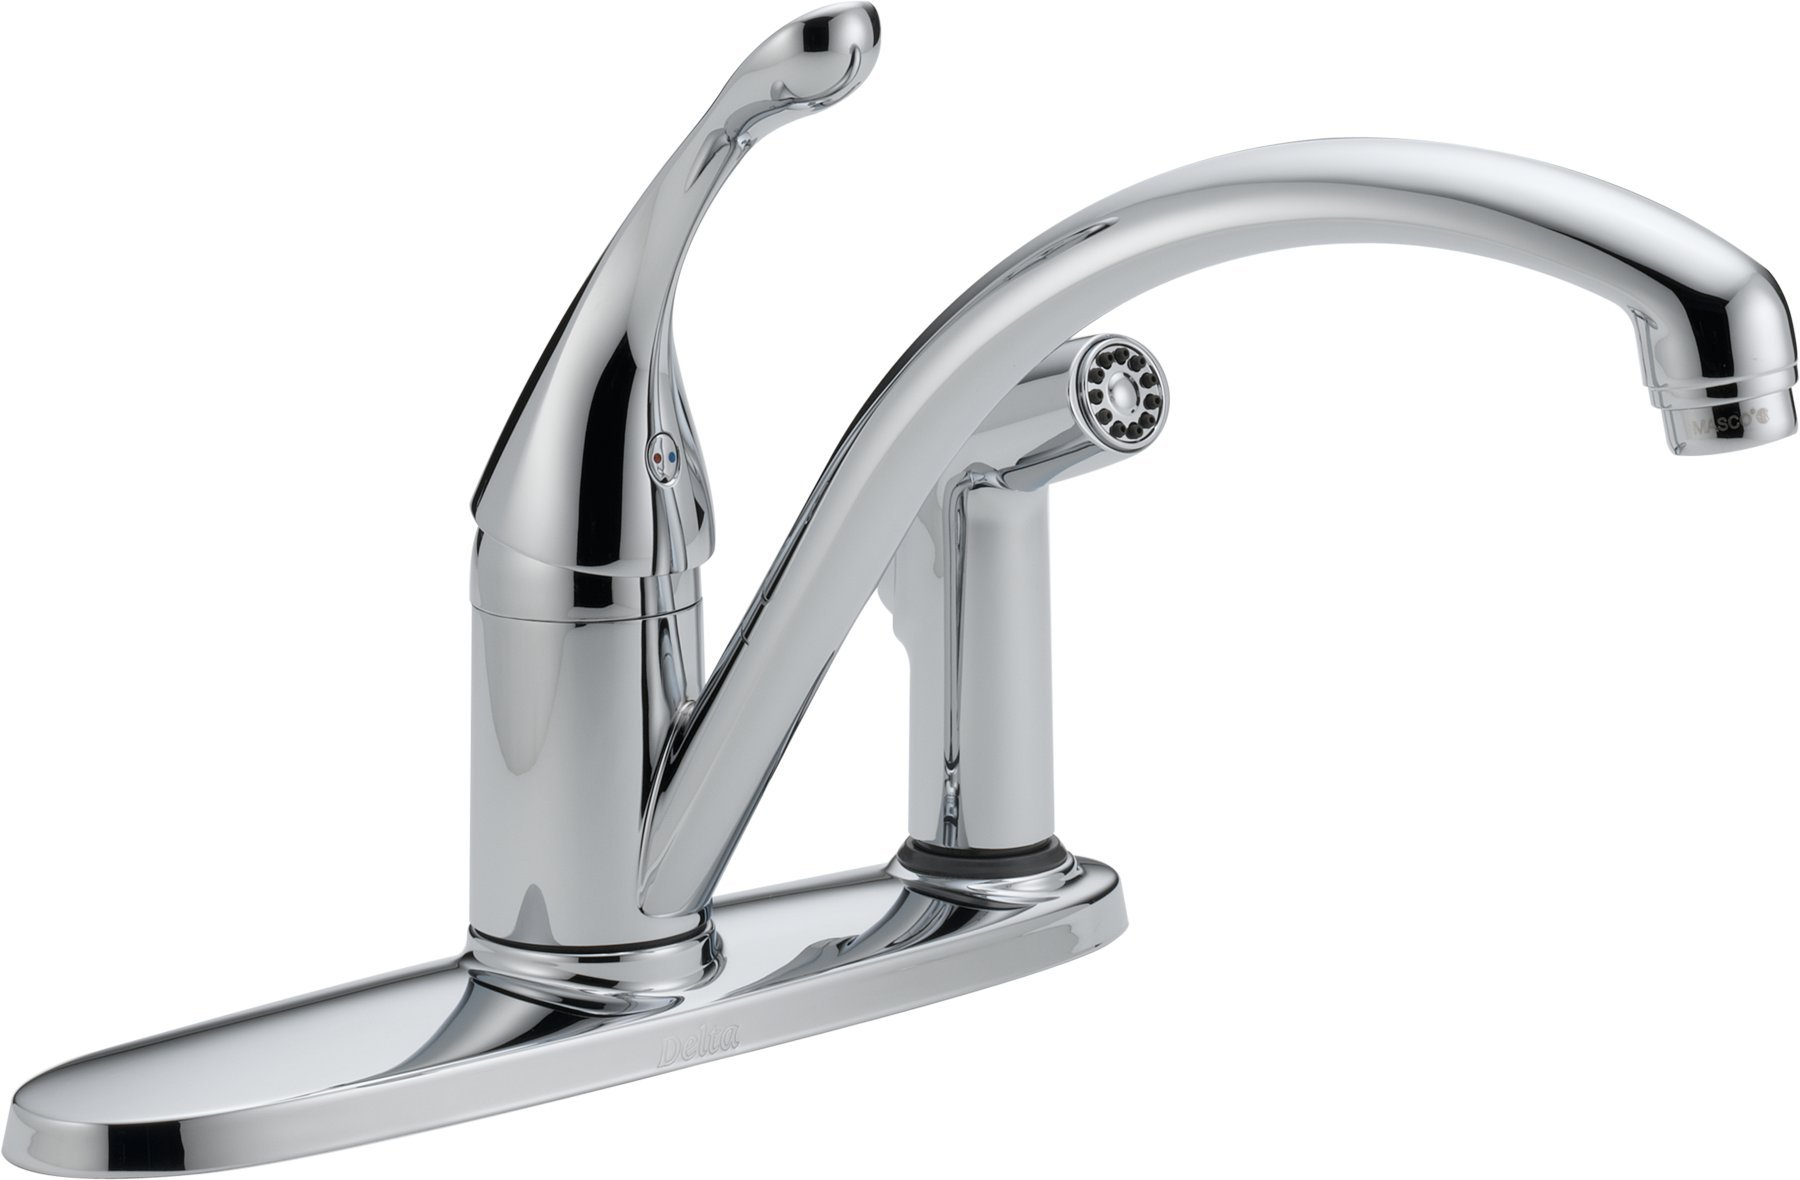 Delta 340-WE-DST Collins Single Handle Water-Efficient Kitchen Faucet with Integral Spray, Chrome by DELTA FAUCET